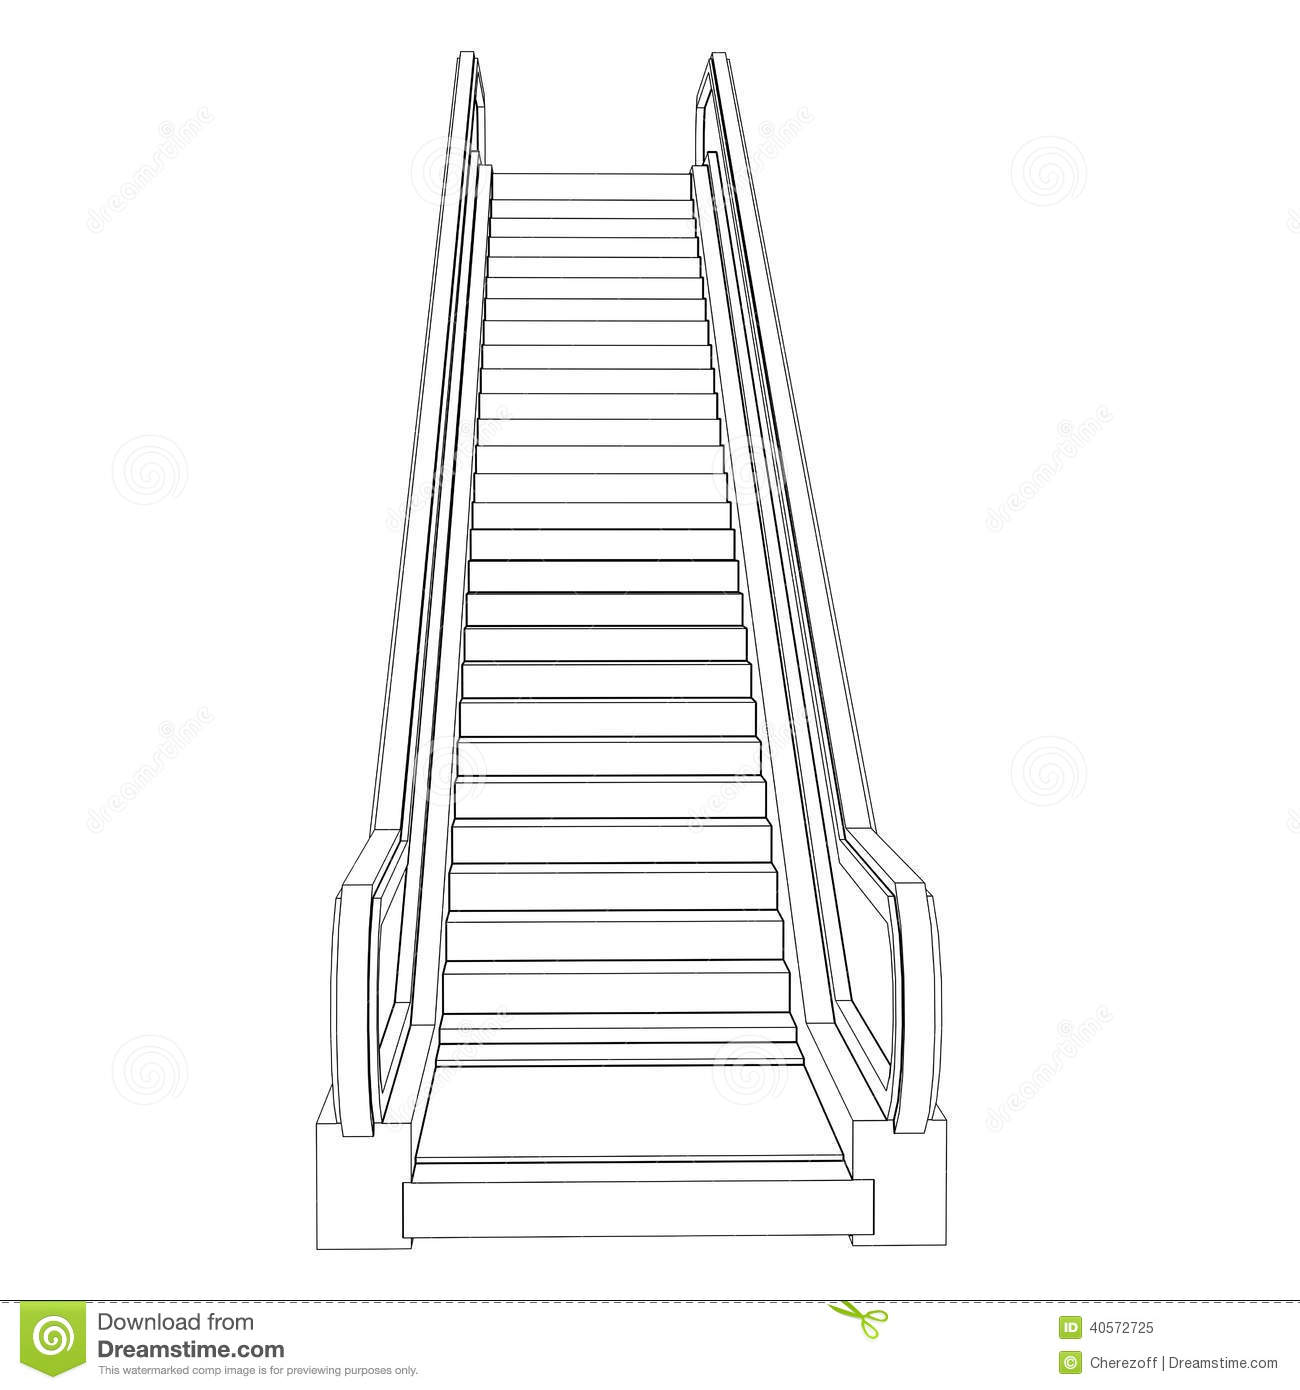 escalator colouring pages sketch coloring page